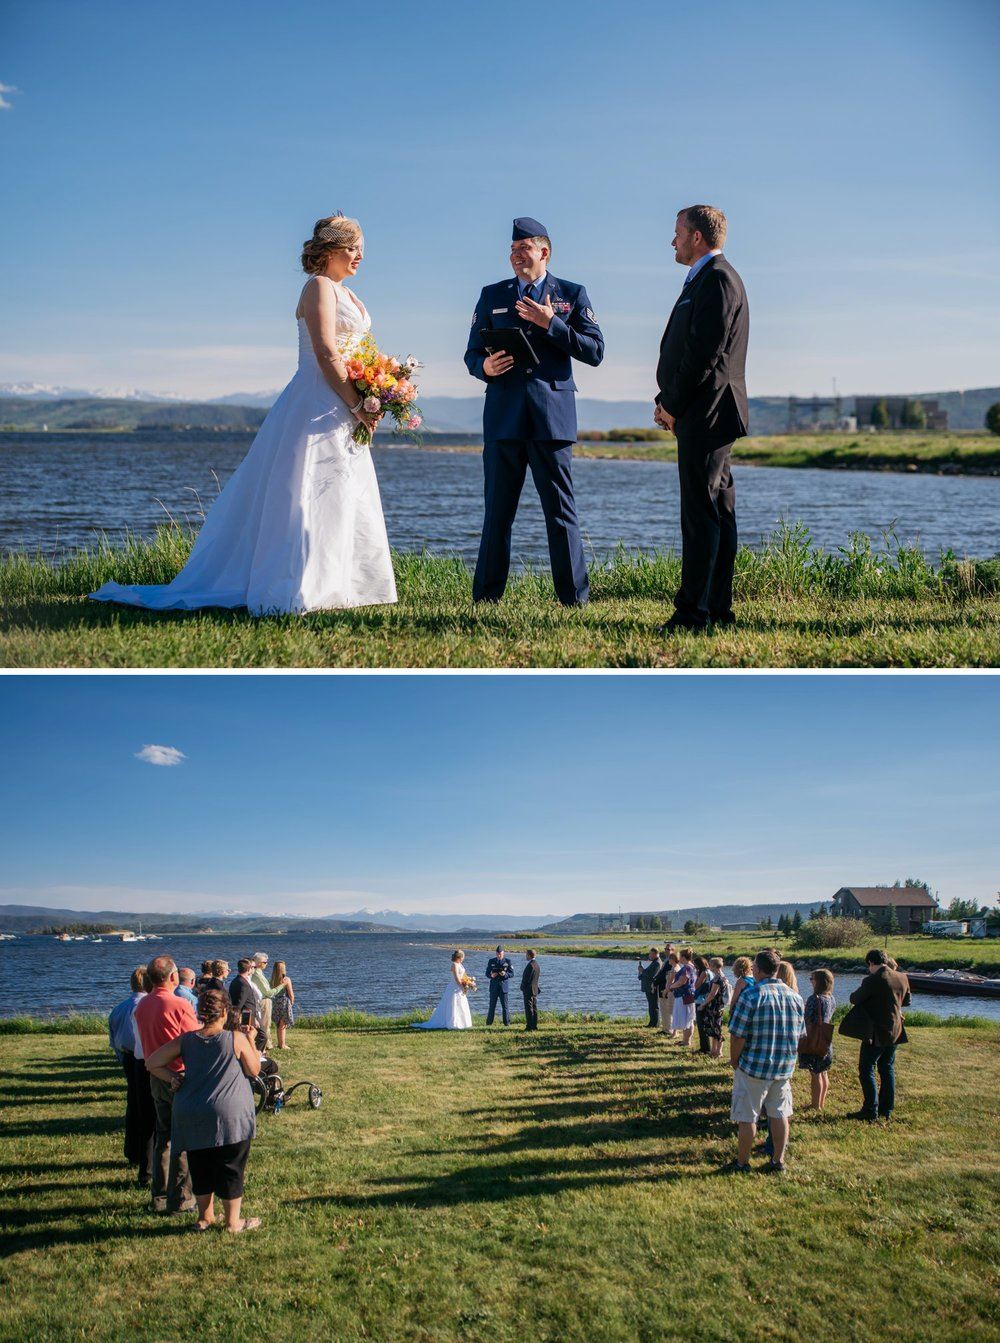 Grand Lake in Granby, Colorado is the perfect wedding venue! This ceremony overlooking the lake and the mountains is amazing! For a short, intimate wedding or elopement, the guests can stand instead of sitting! Photo by Maddie Mae Photography